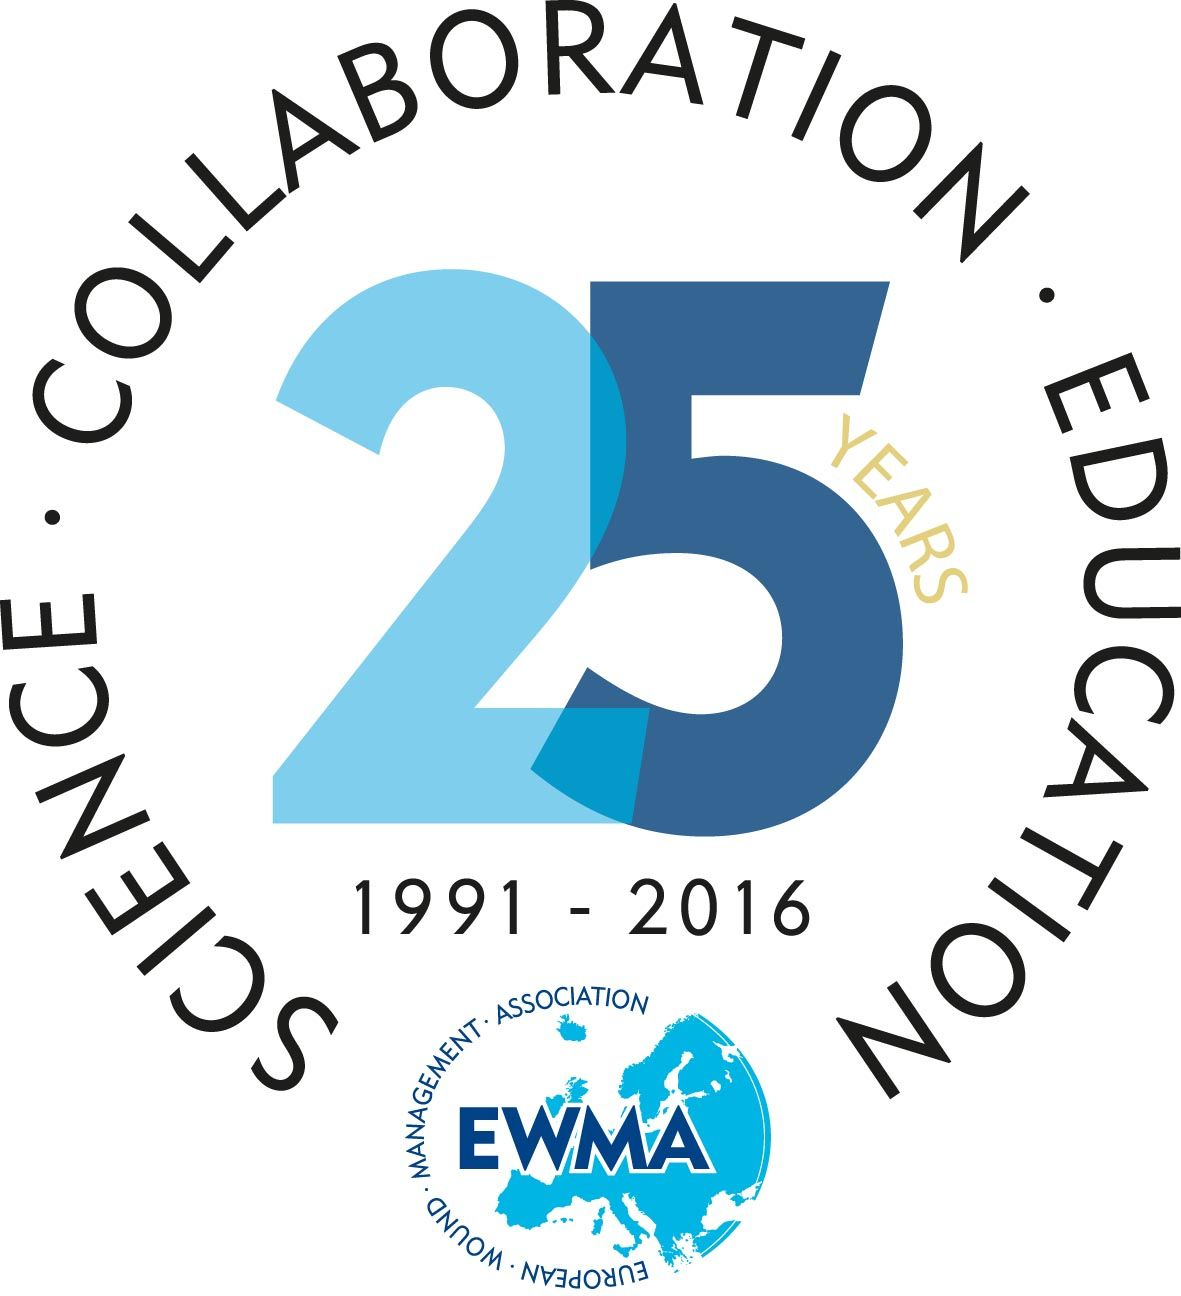 EWMA_25years_of_S_C_E_noframe.jpg